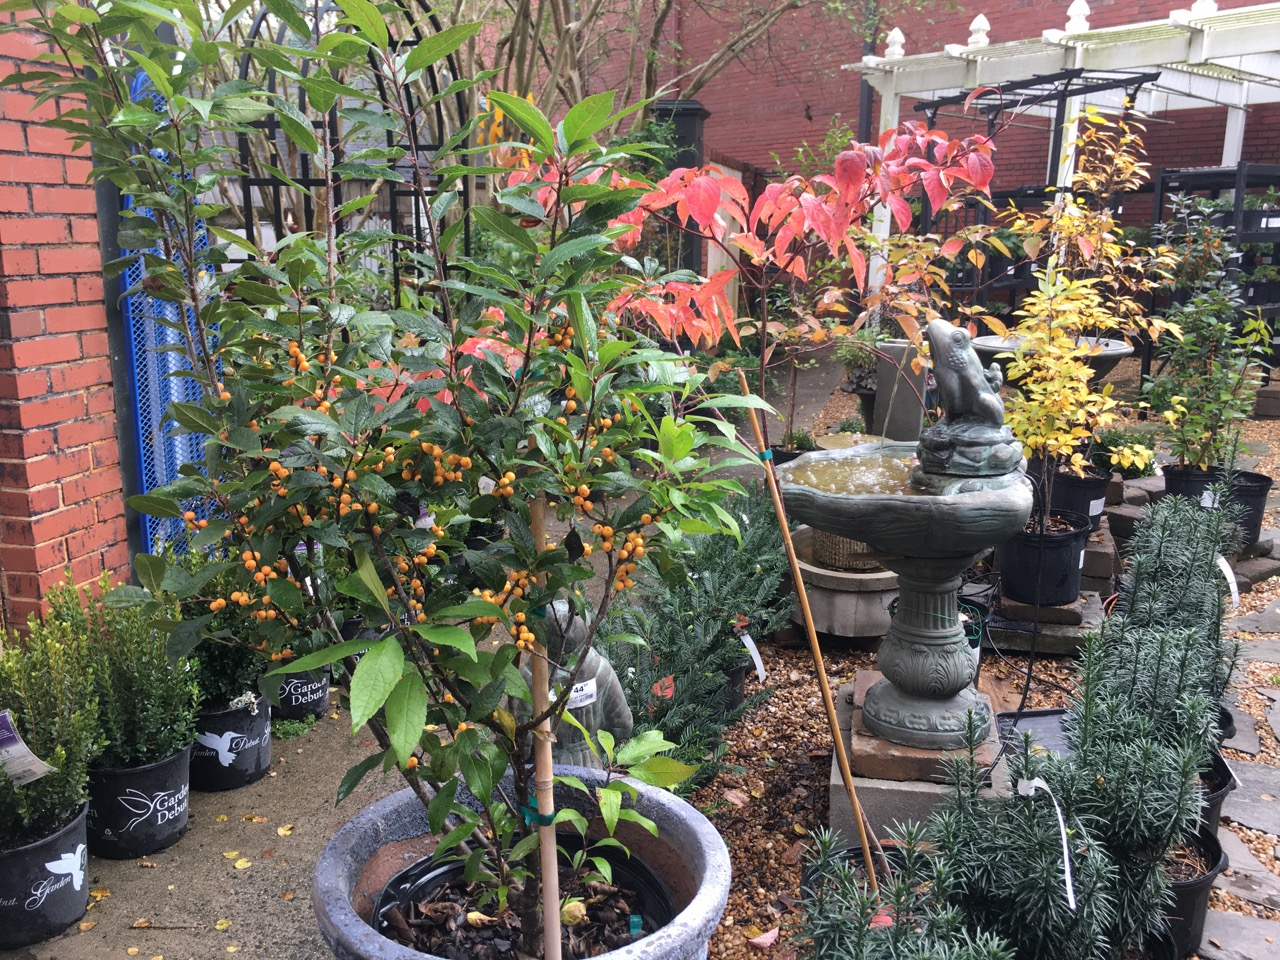 Fall bushes and trees at Blackhawks Garden Center